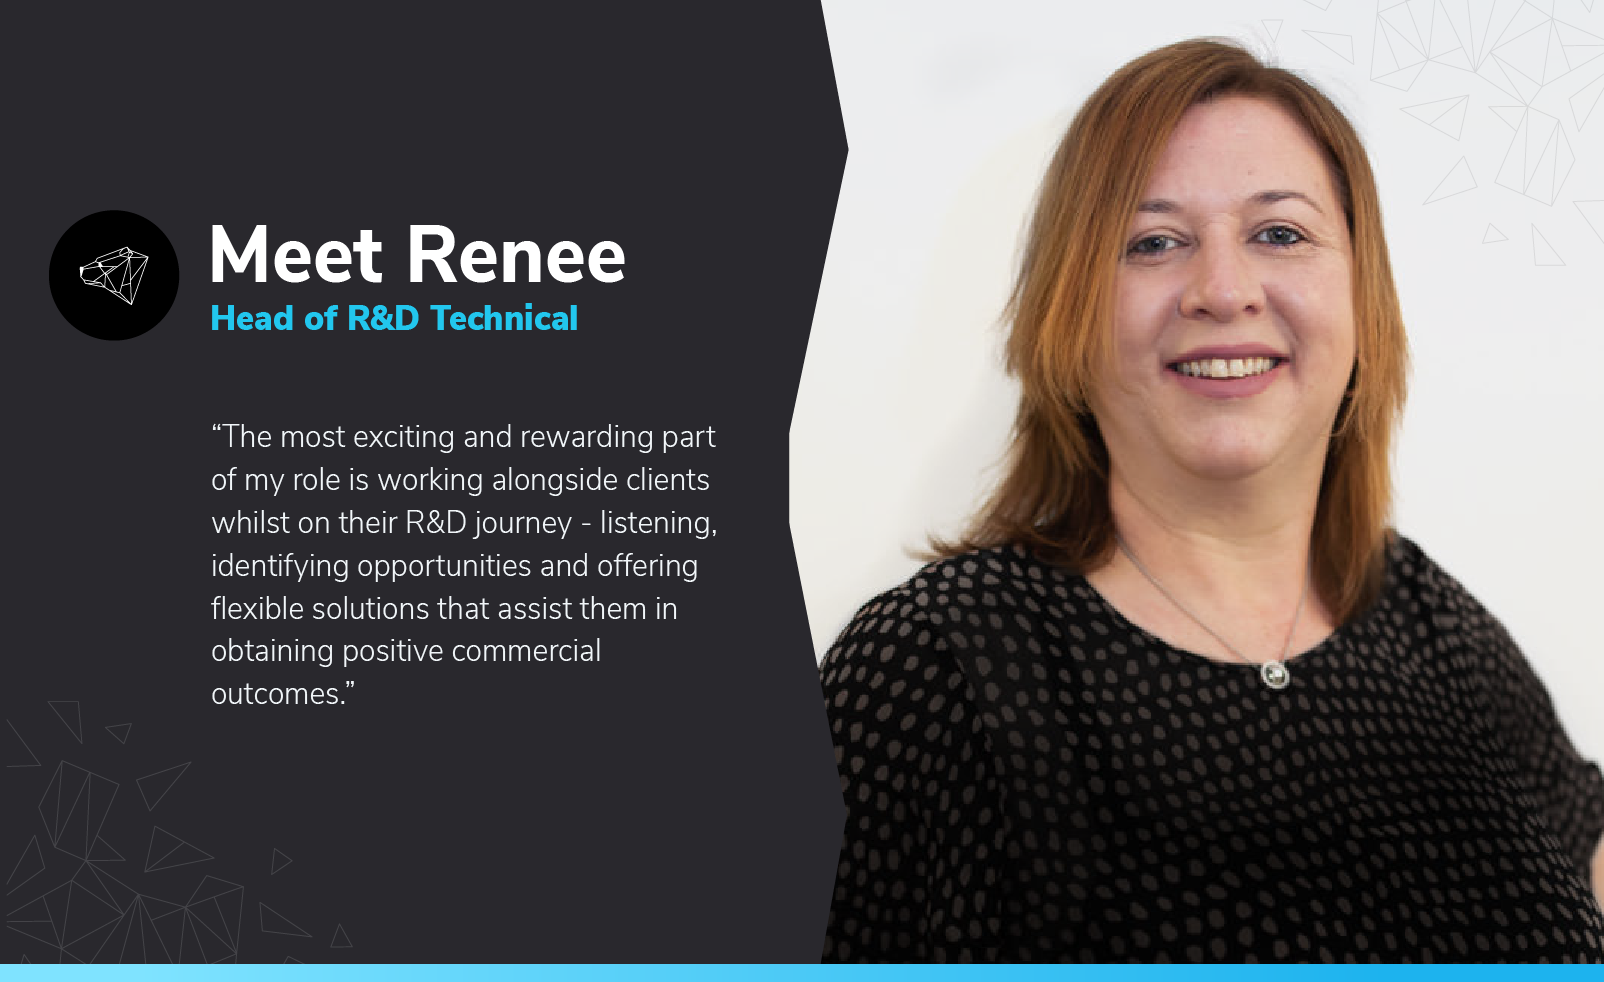 Close up headshot of Renee, ABA Legal Group's Head of R&D Technical.